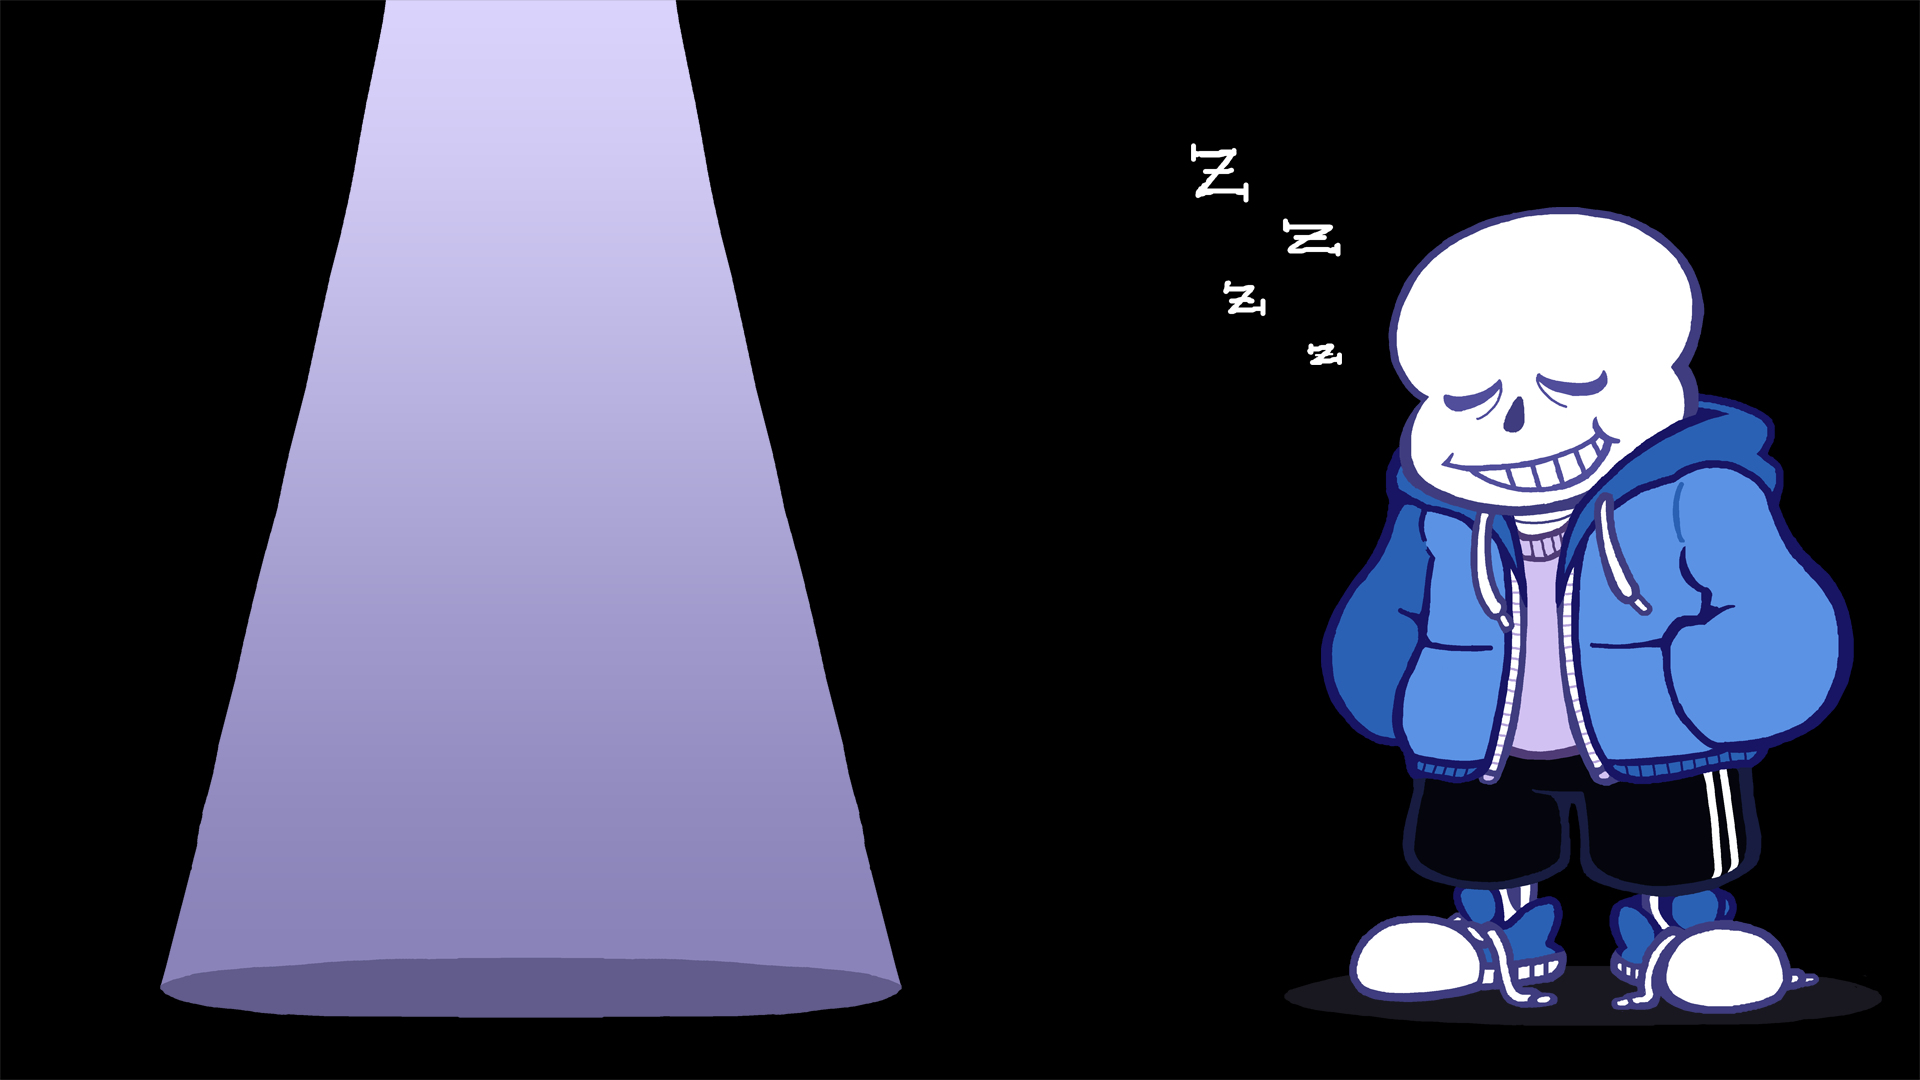 1920x1080 - Undertale Wallpaper 1920x1080 37